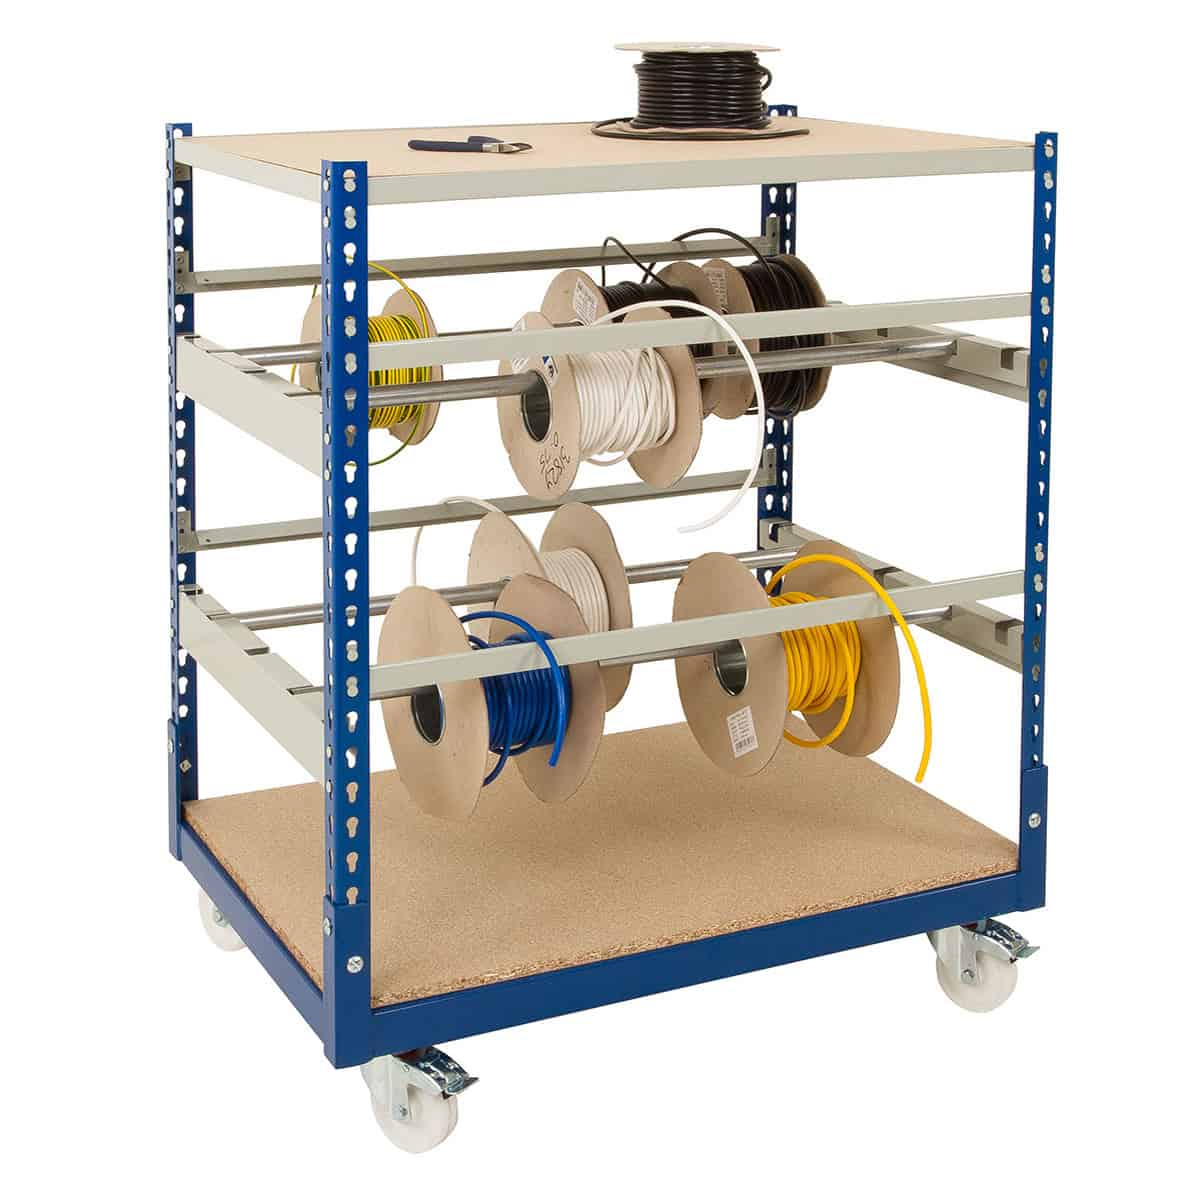 Rivet Mobile Cable Reel Storage Racks